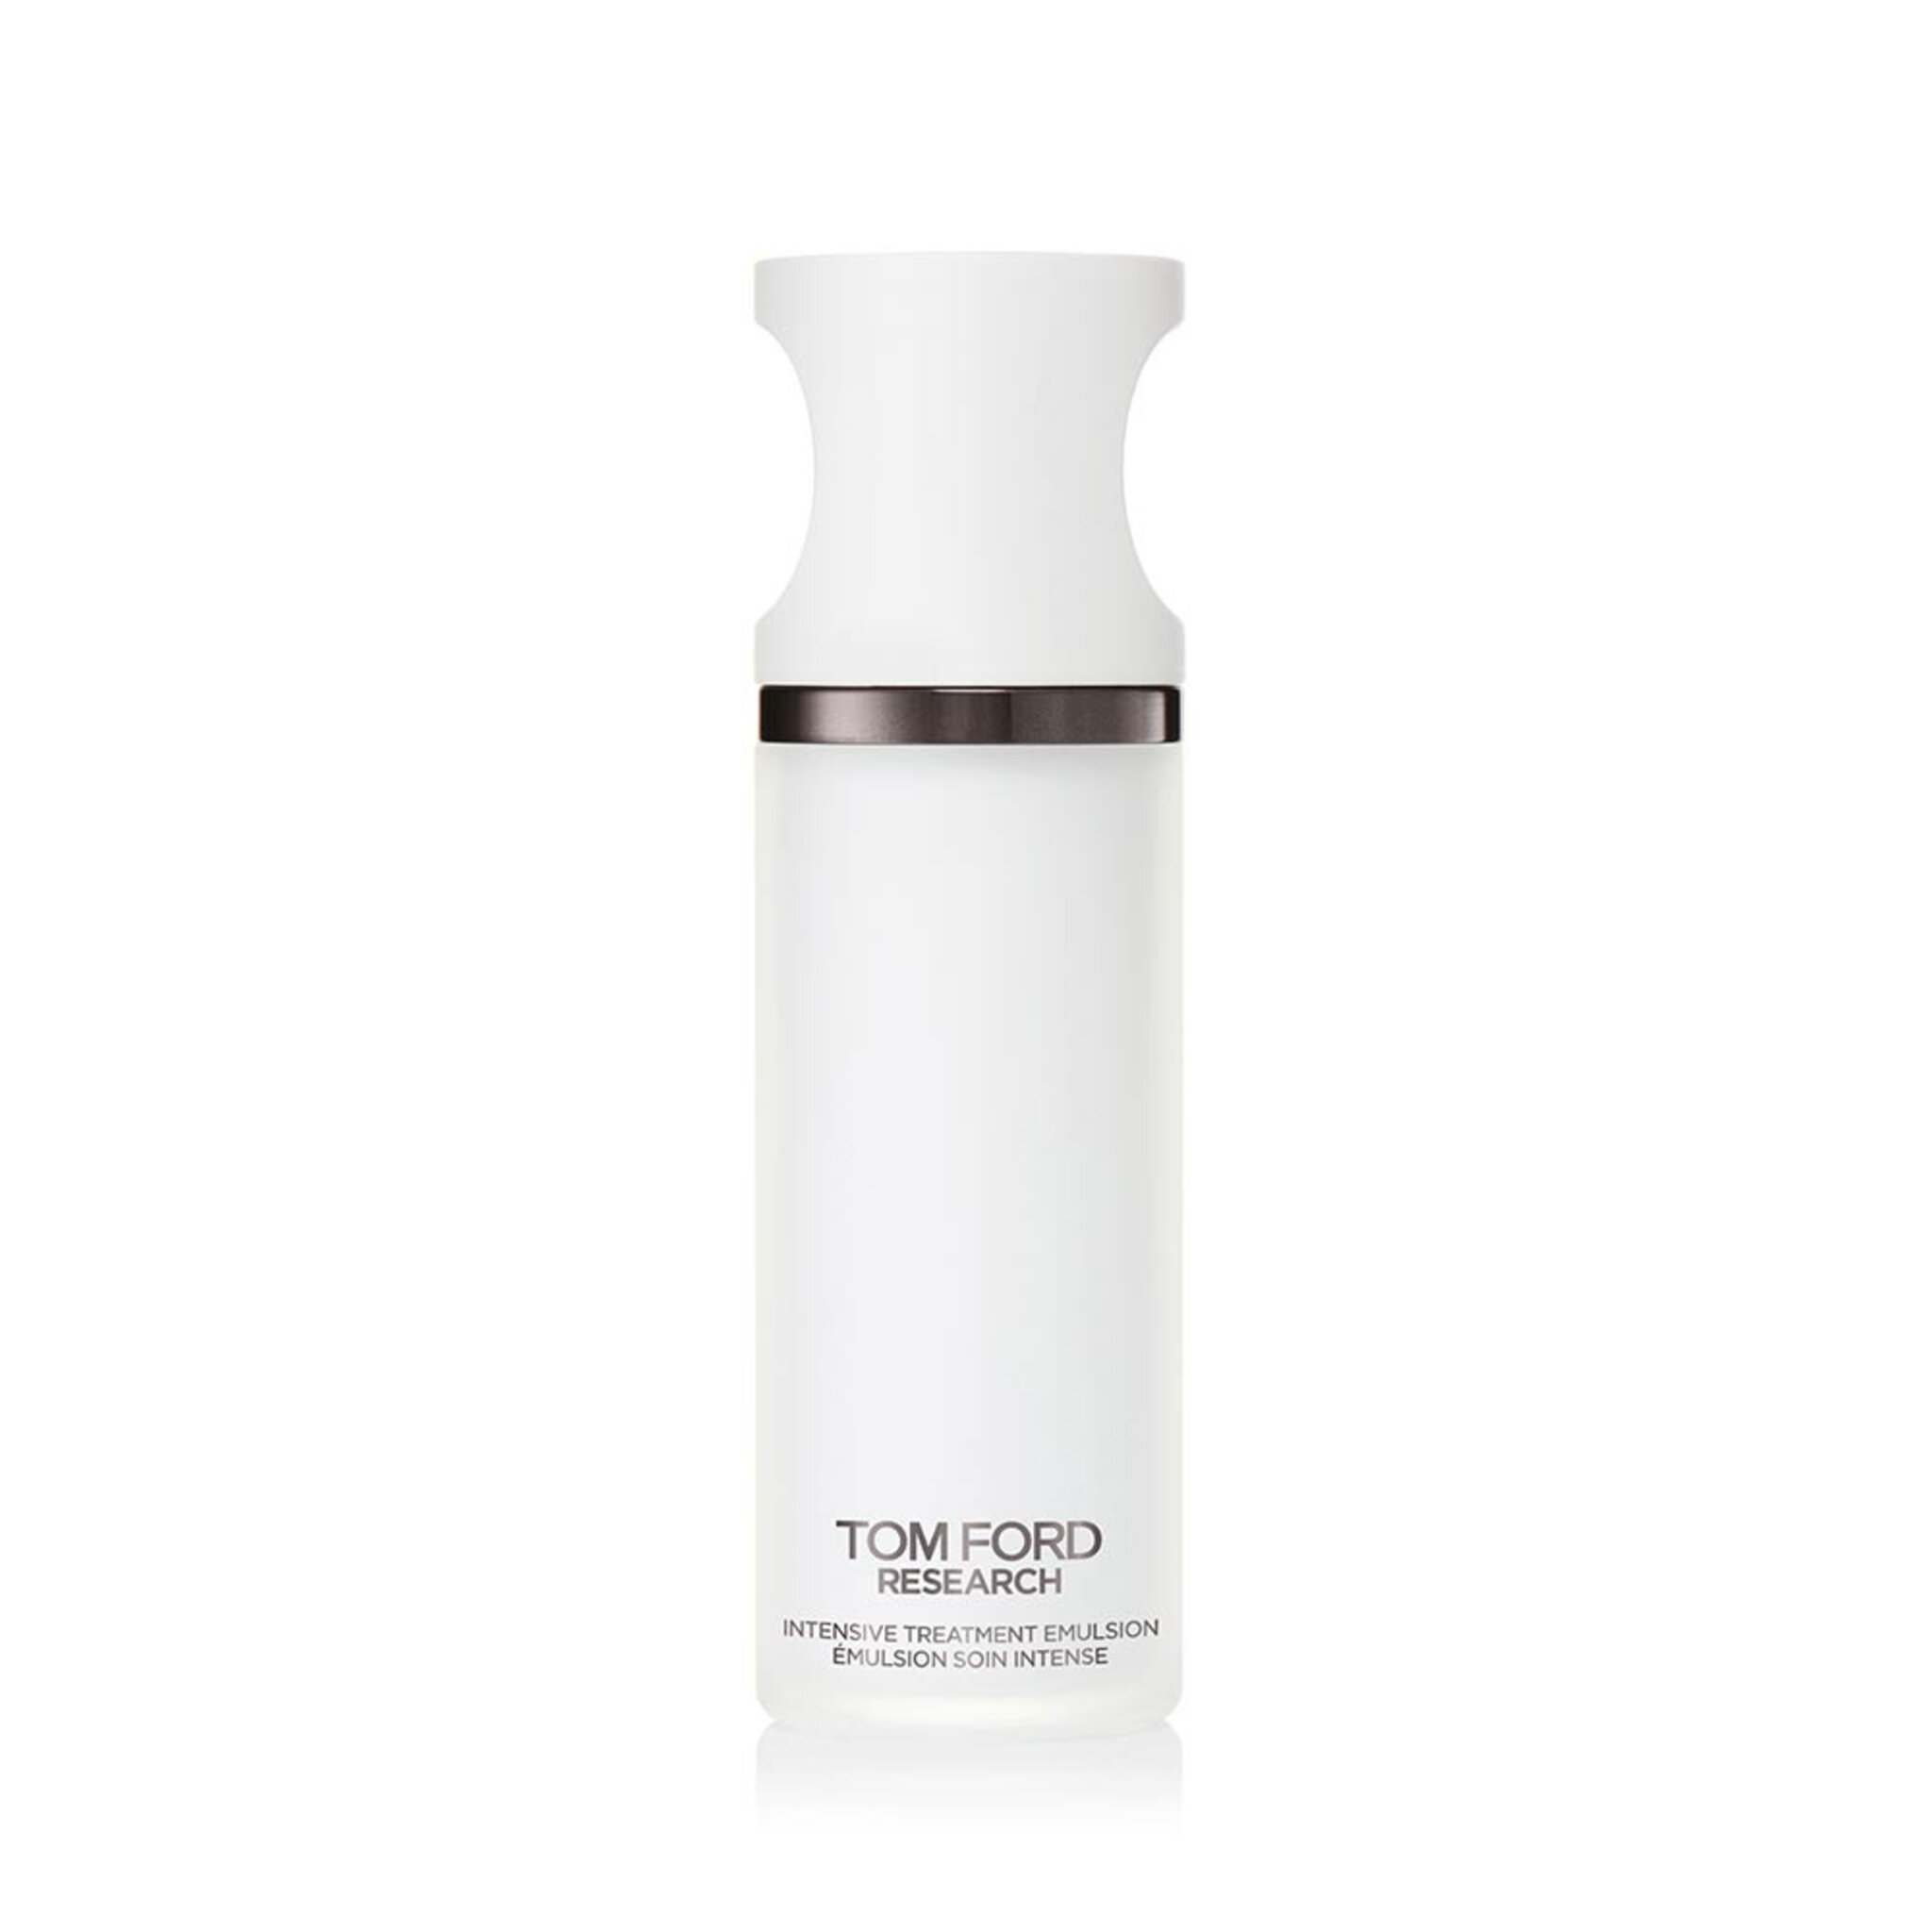 Research Intensive Treatment Emulsion, 125 ML